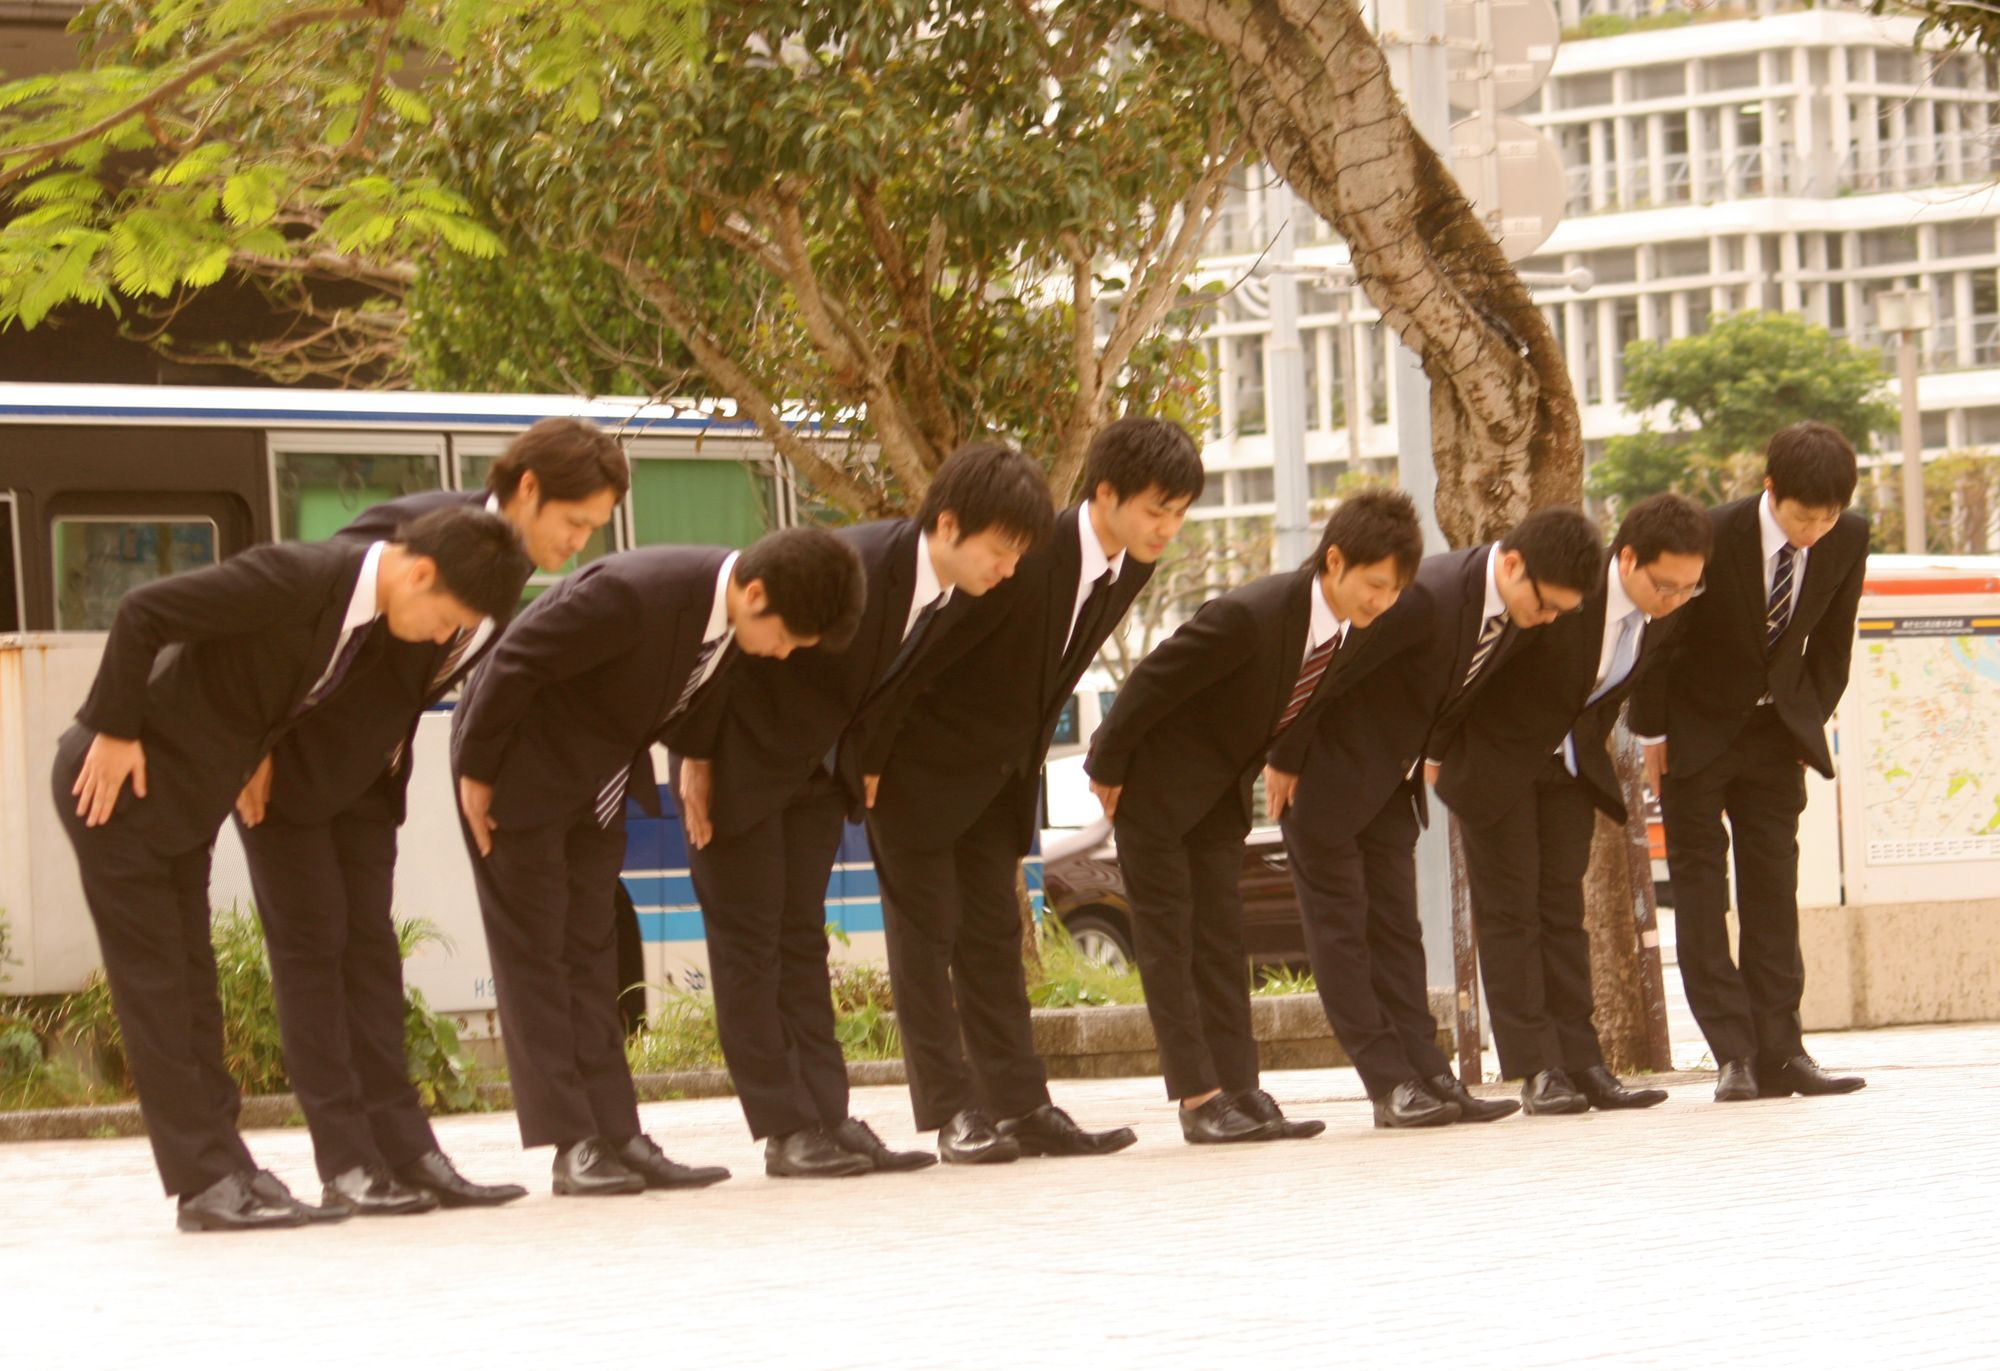 A Guide To Bowing In Japan: When & How To Bow, Plus Common Mistakes To Avoid